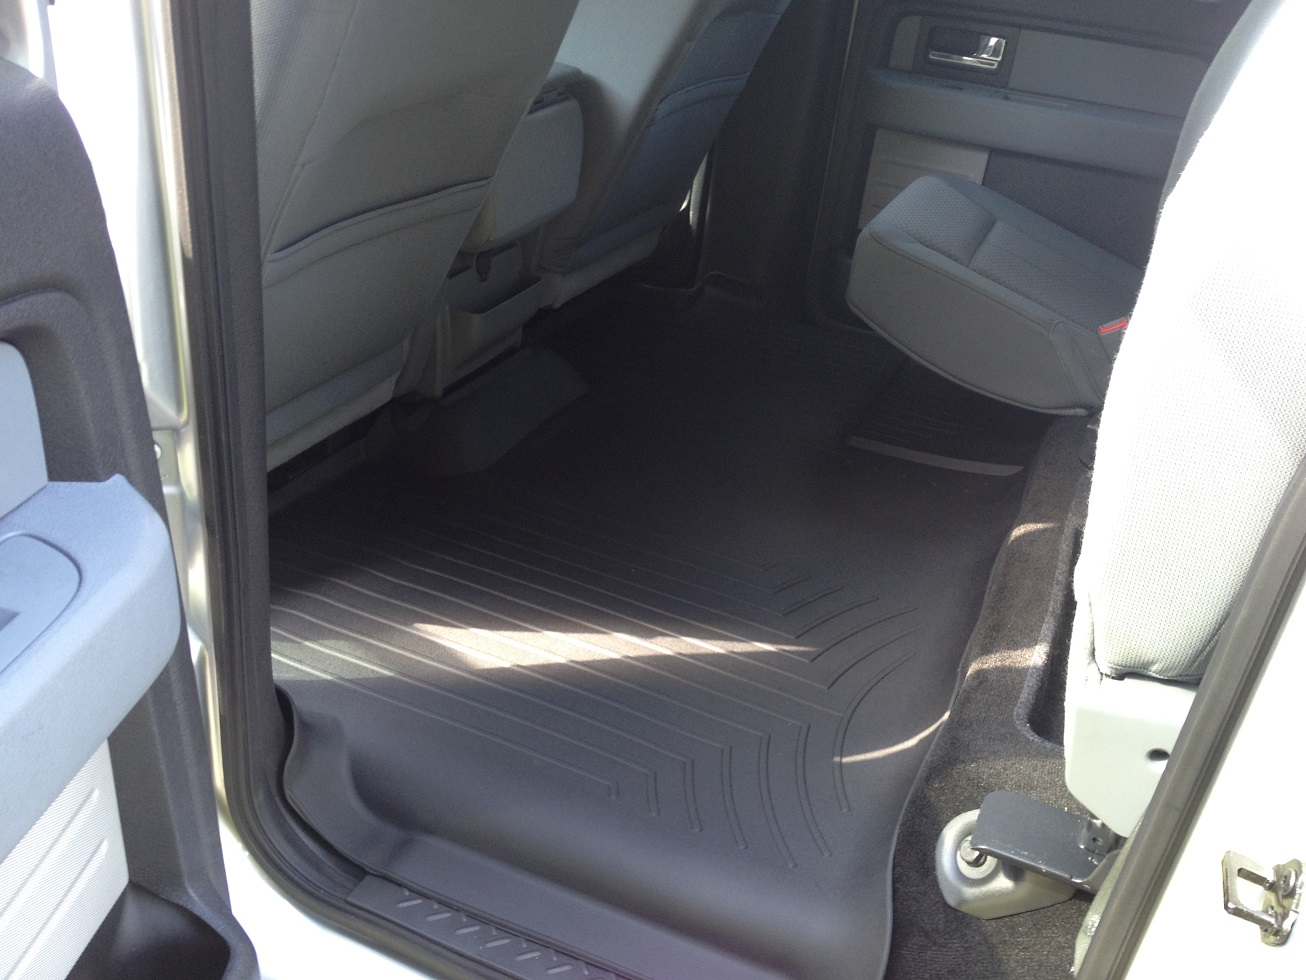 Review Of The Weathertech All Weather Front Floor Mats On A